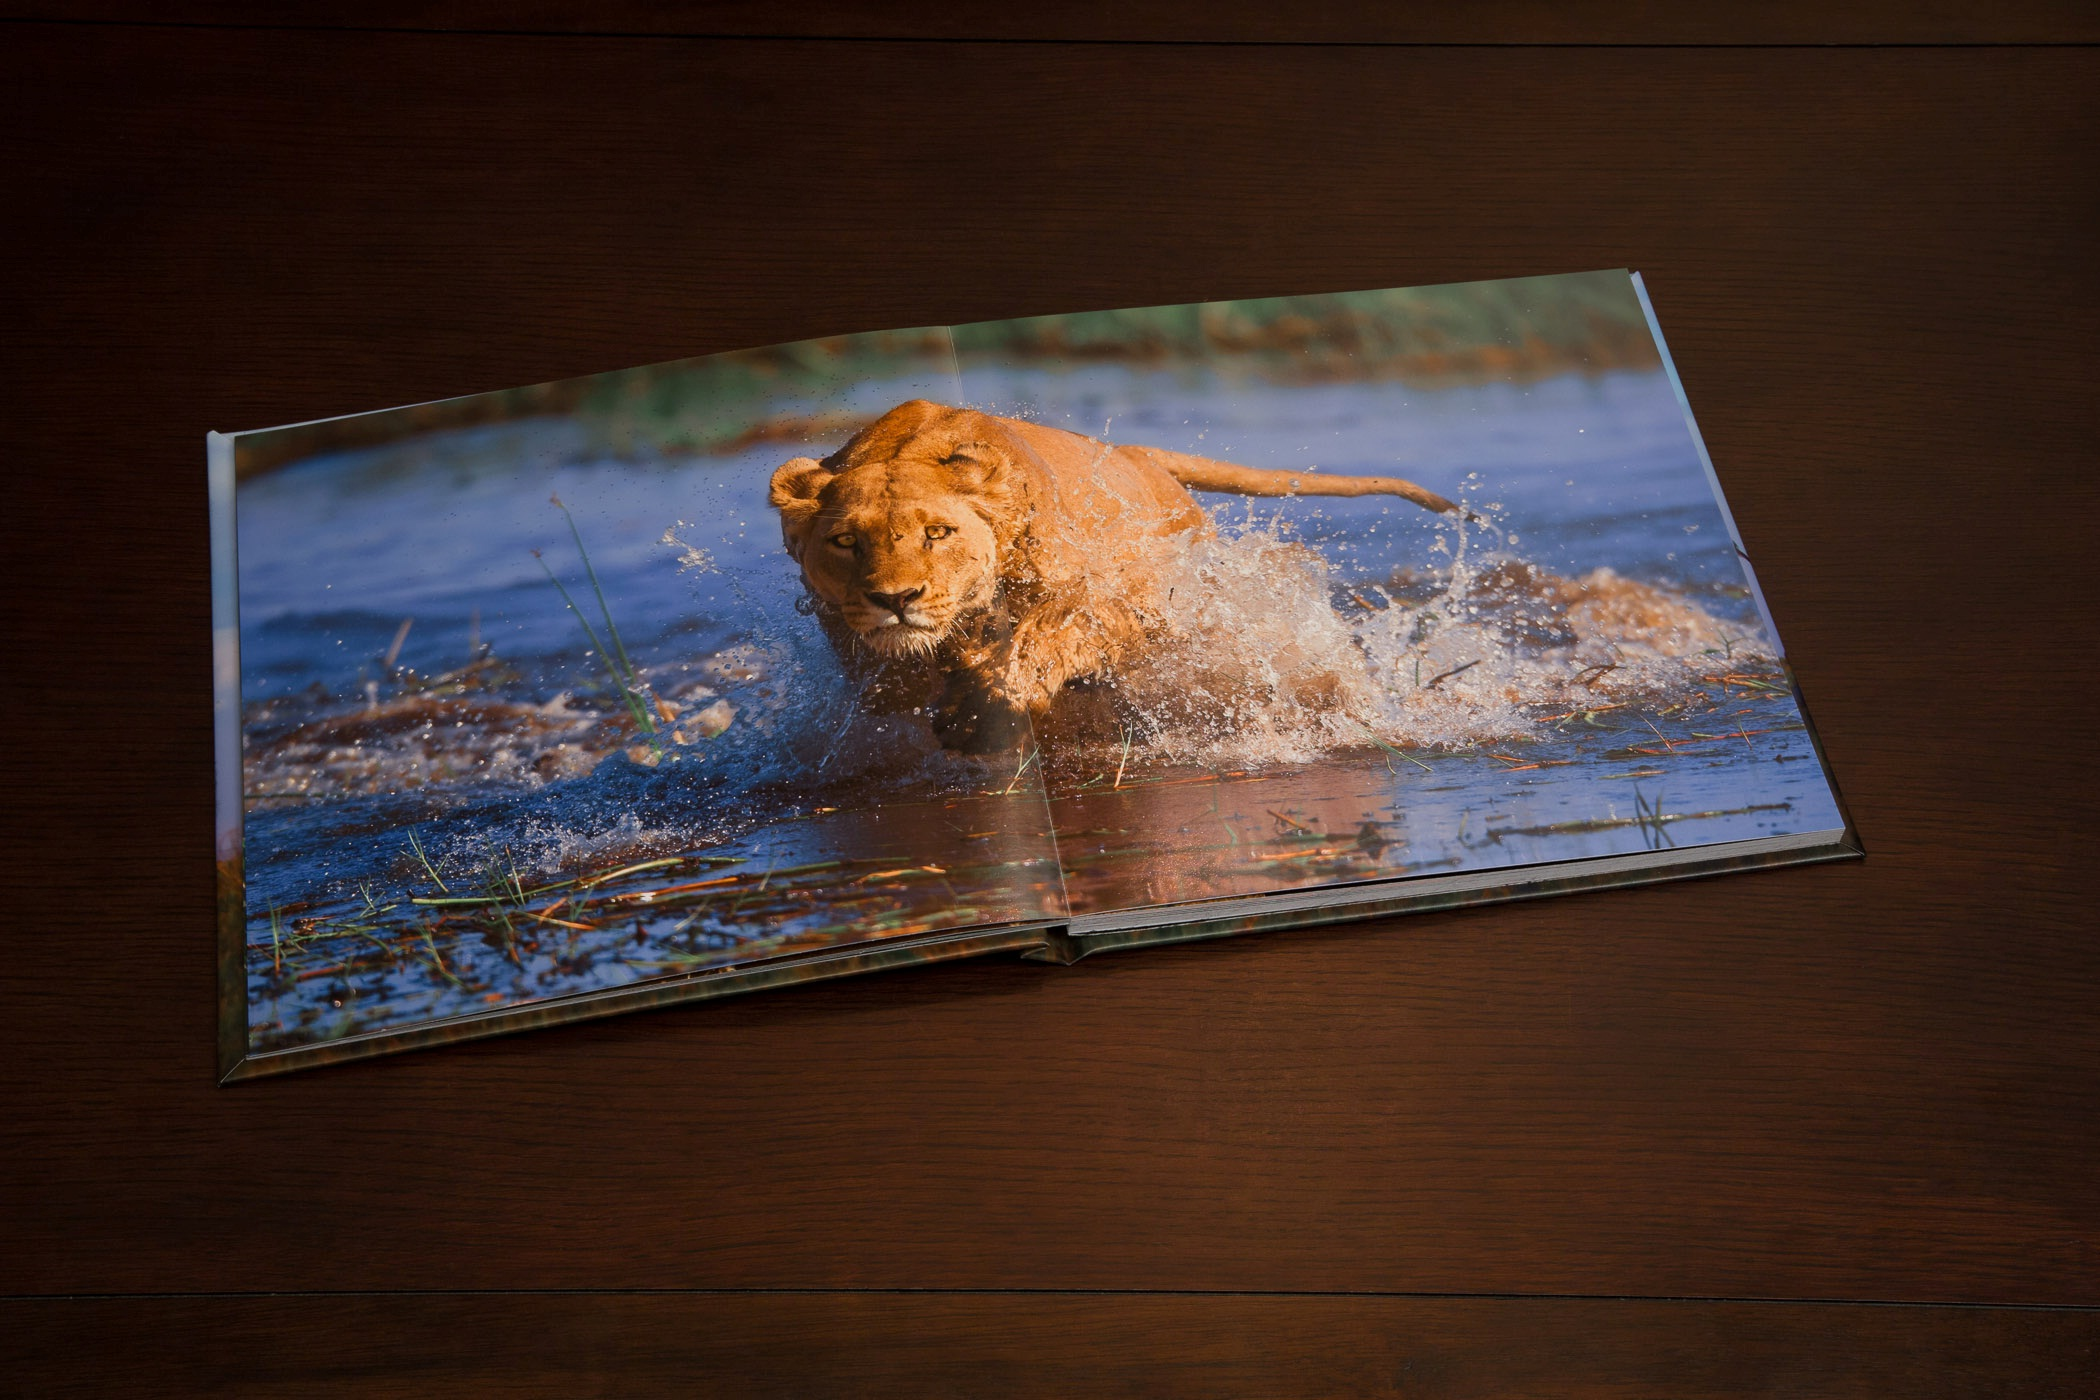 capturing and printing wildlife for charity | lexjet blog